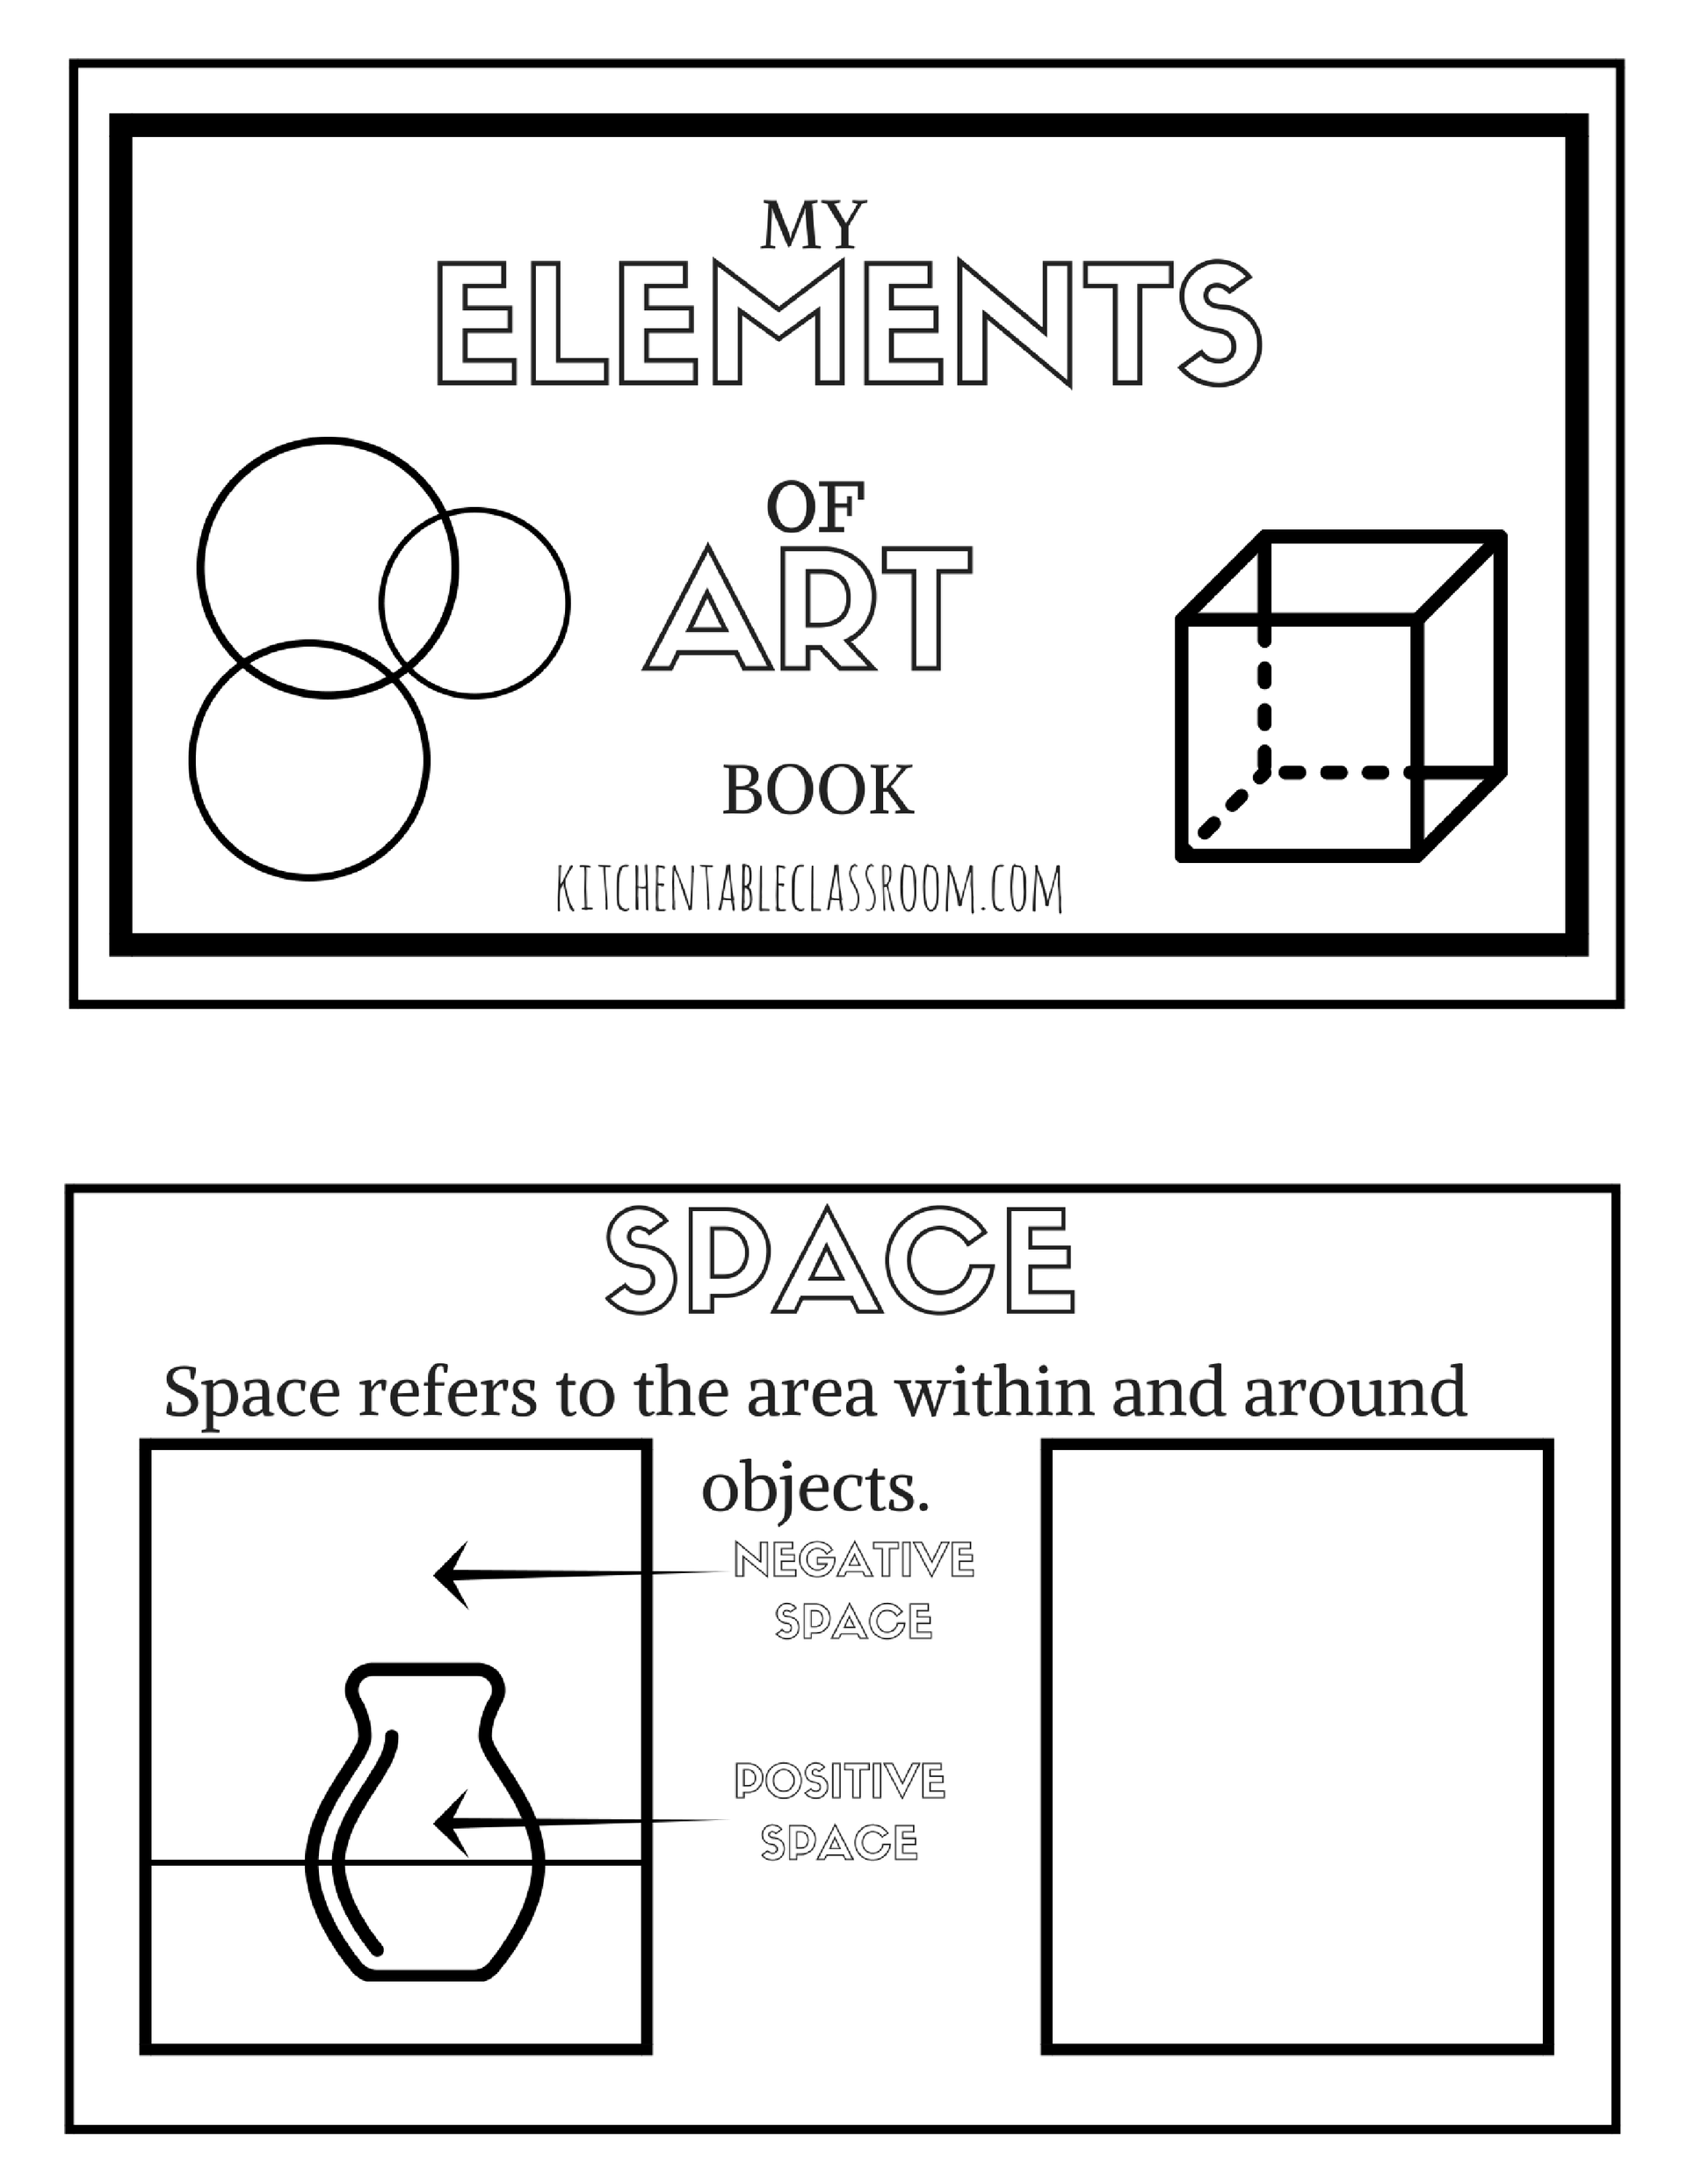 The Formal Elements Of Art For Kids With Free Printable Book The Kitchen Table Classroom Art Handouts Elements Of Art High School Art Lesson Plans [ 2485 x 1920 Pixel ]